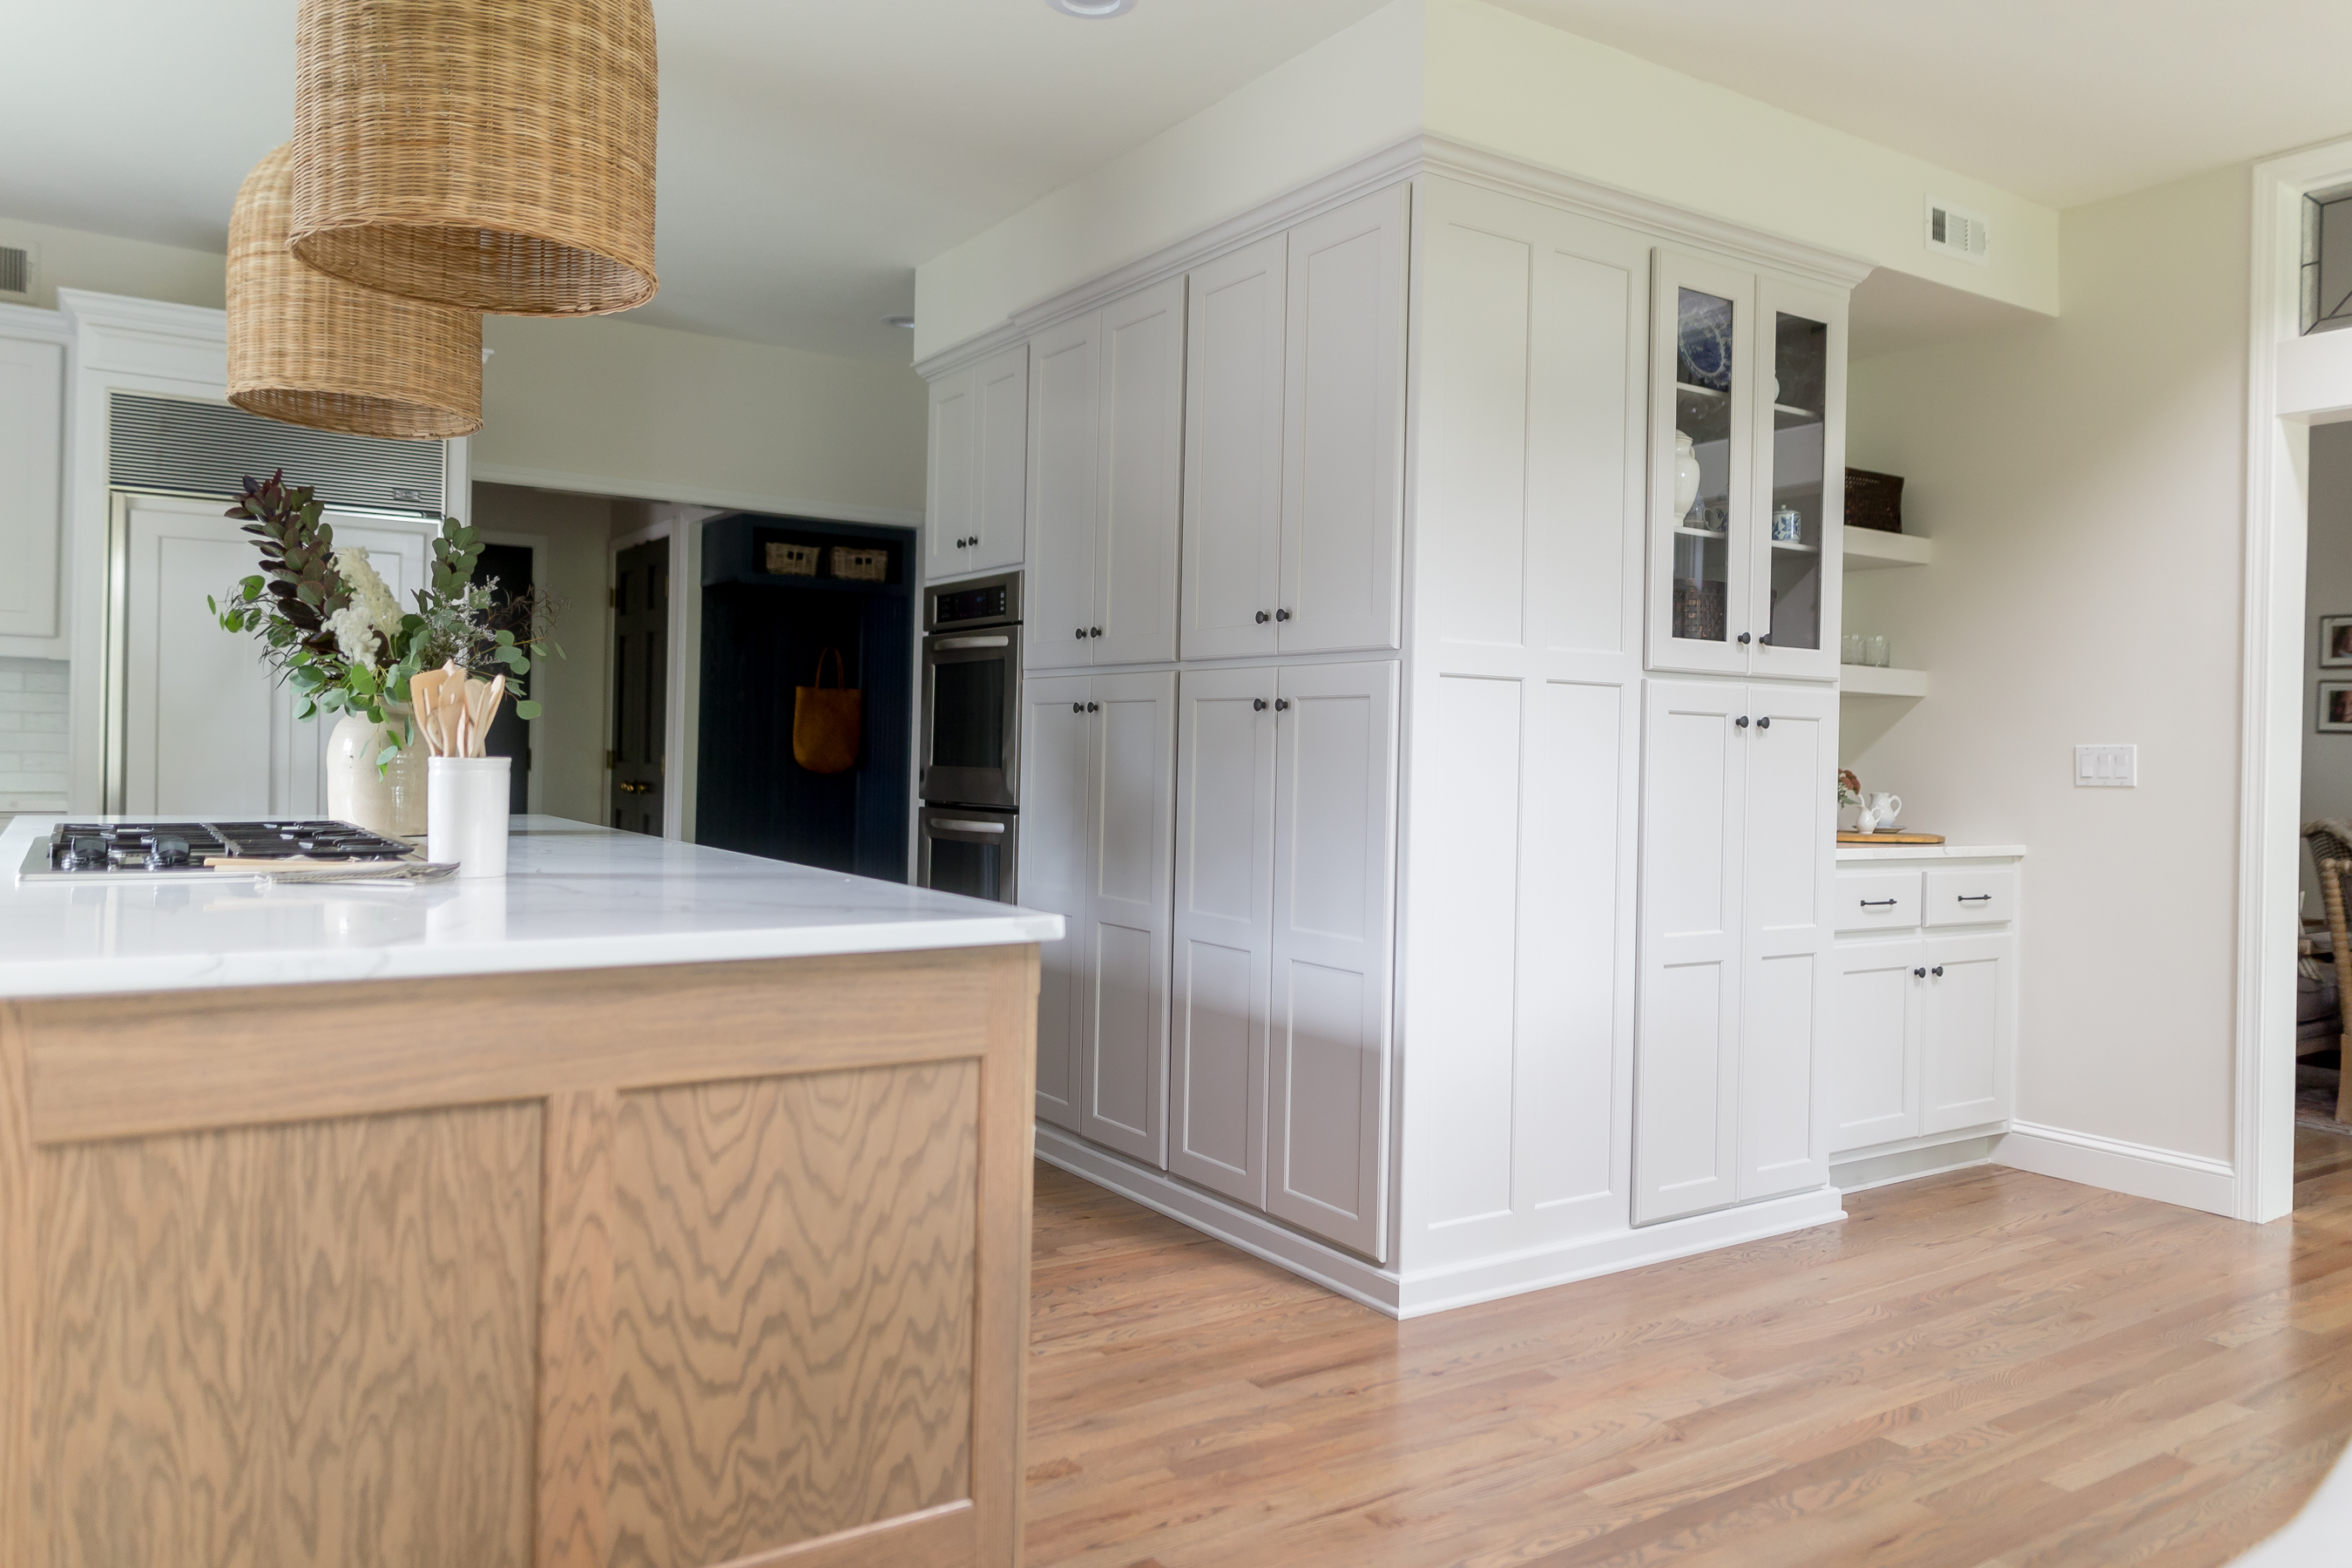 light gray cabinetry, pantry cabinets and coffee bar, woven island pendants